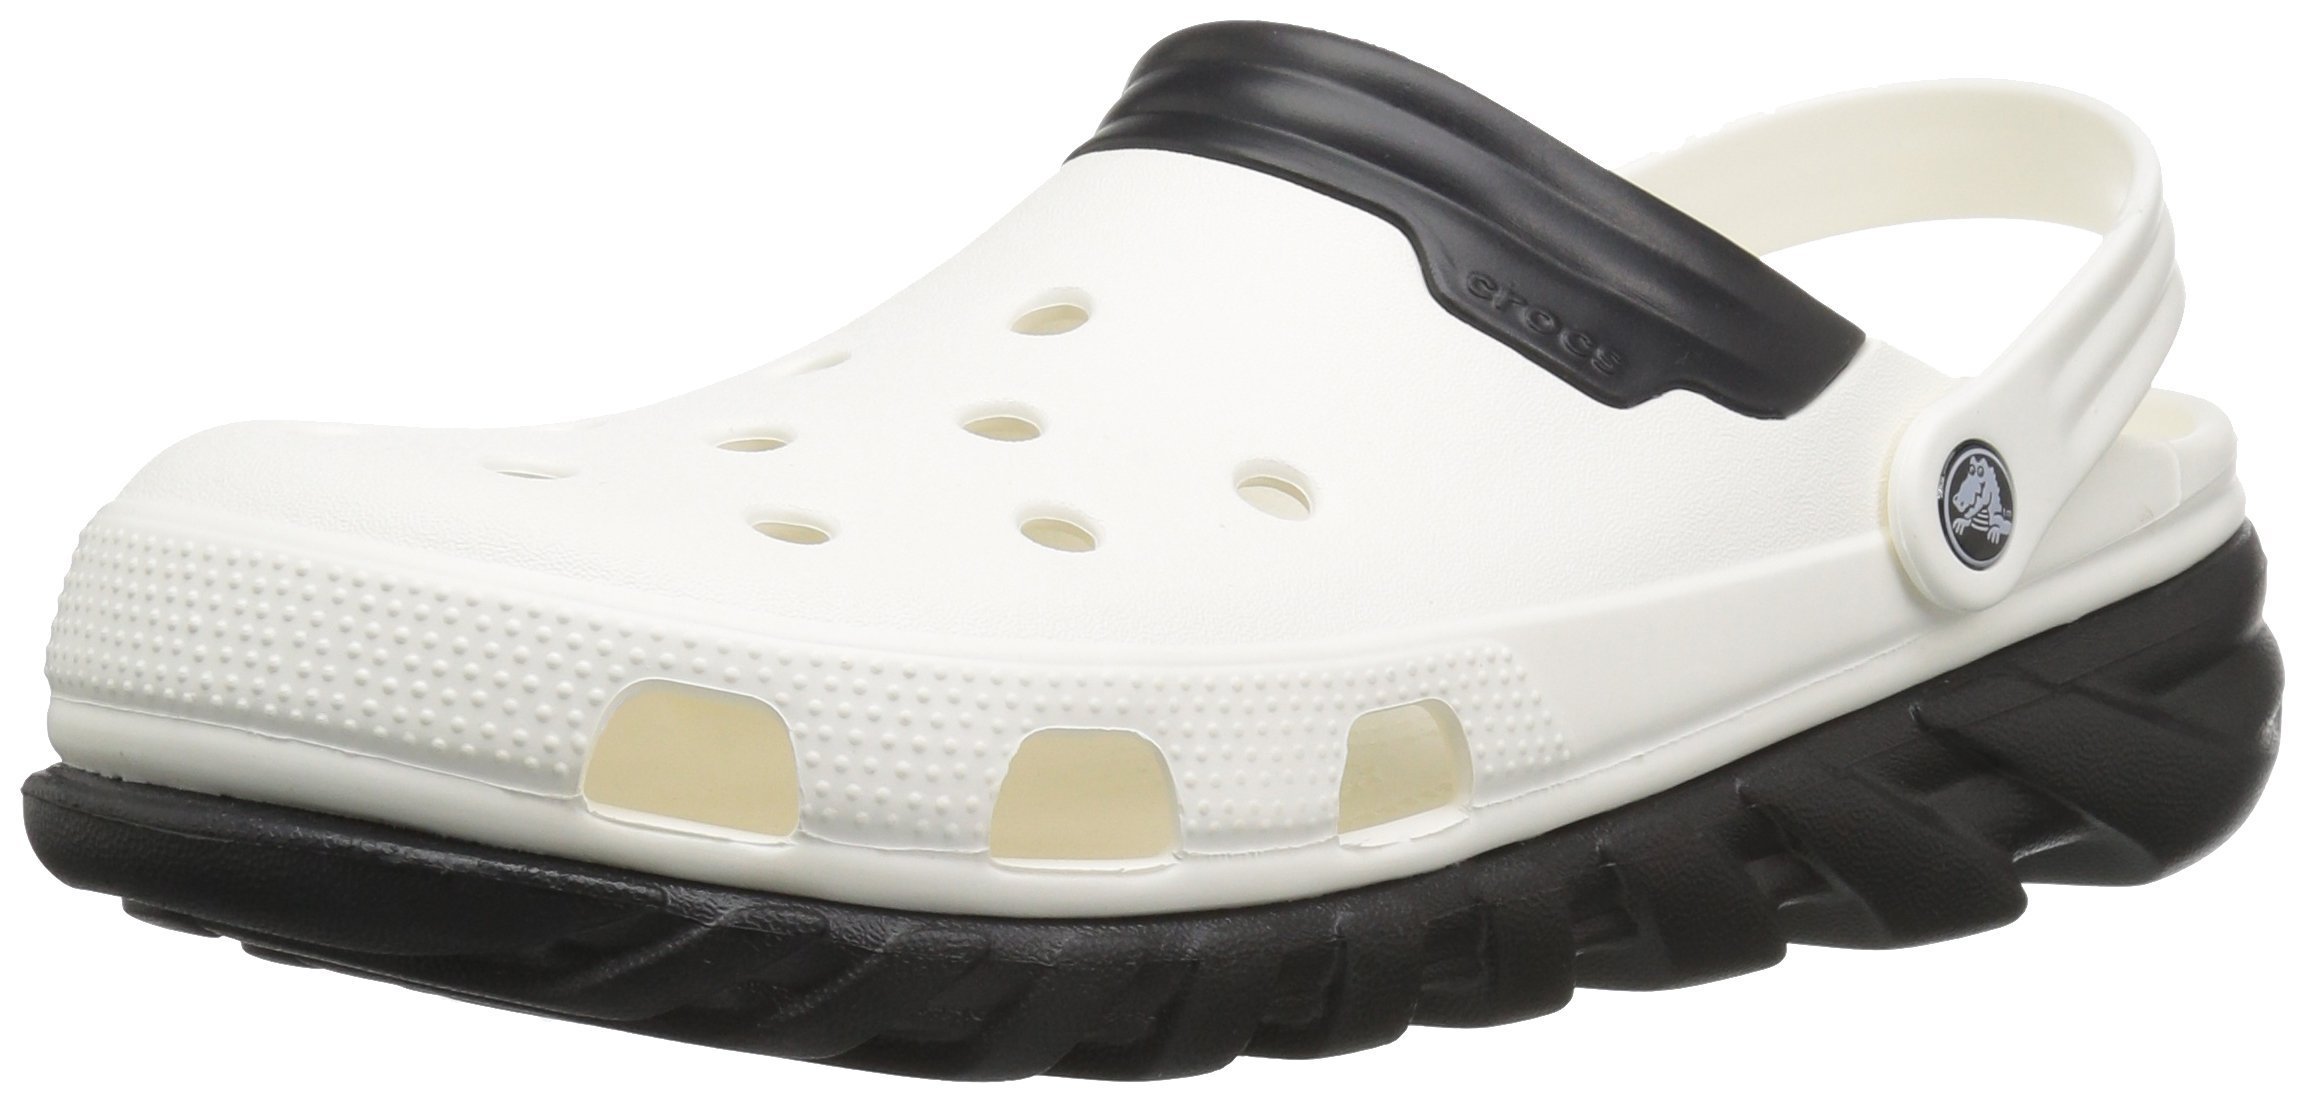 29370a89d0d39f Crocs Unisex Duet Max Clog White Black 9M US Men   11 M US Women